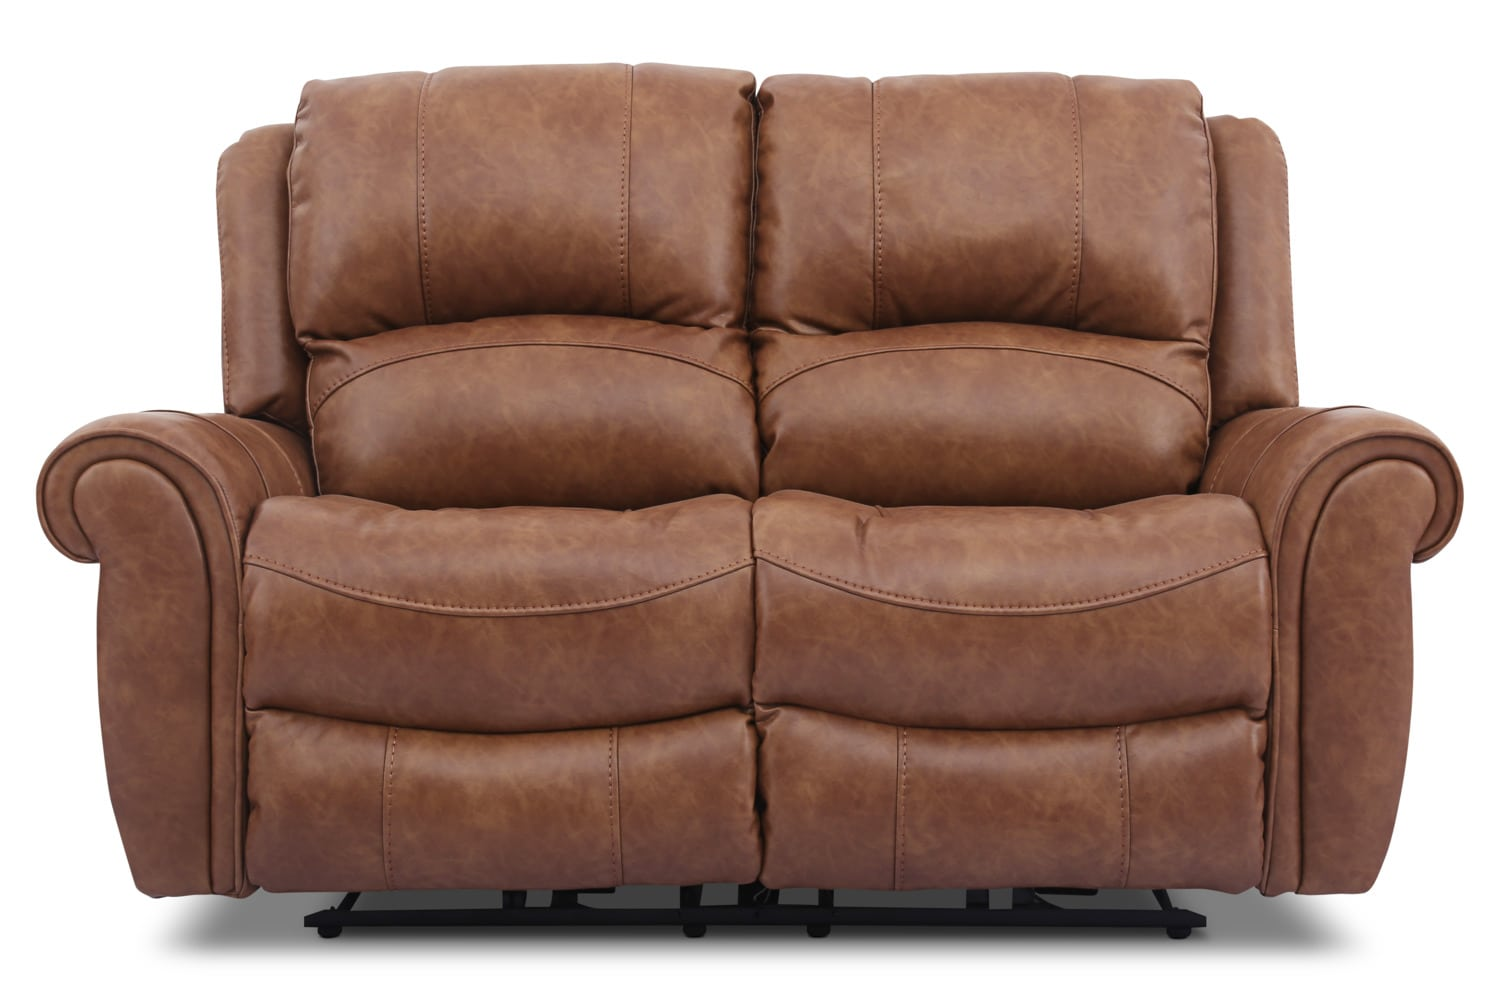 Kane Leather-Look Fabric Power Reclining Loveseat – Saddle